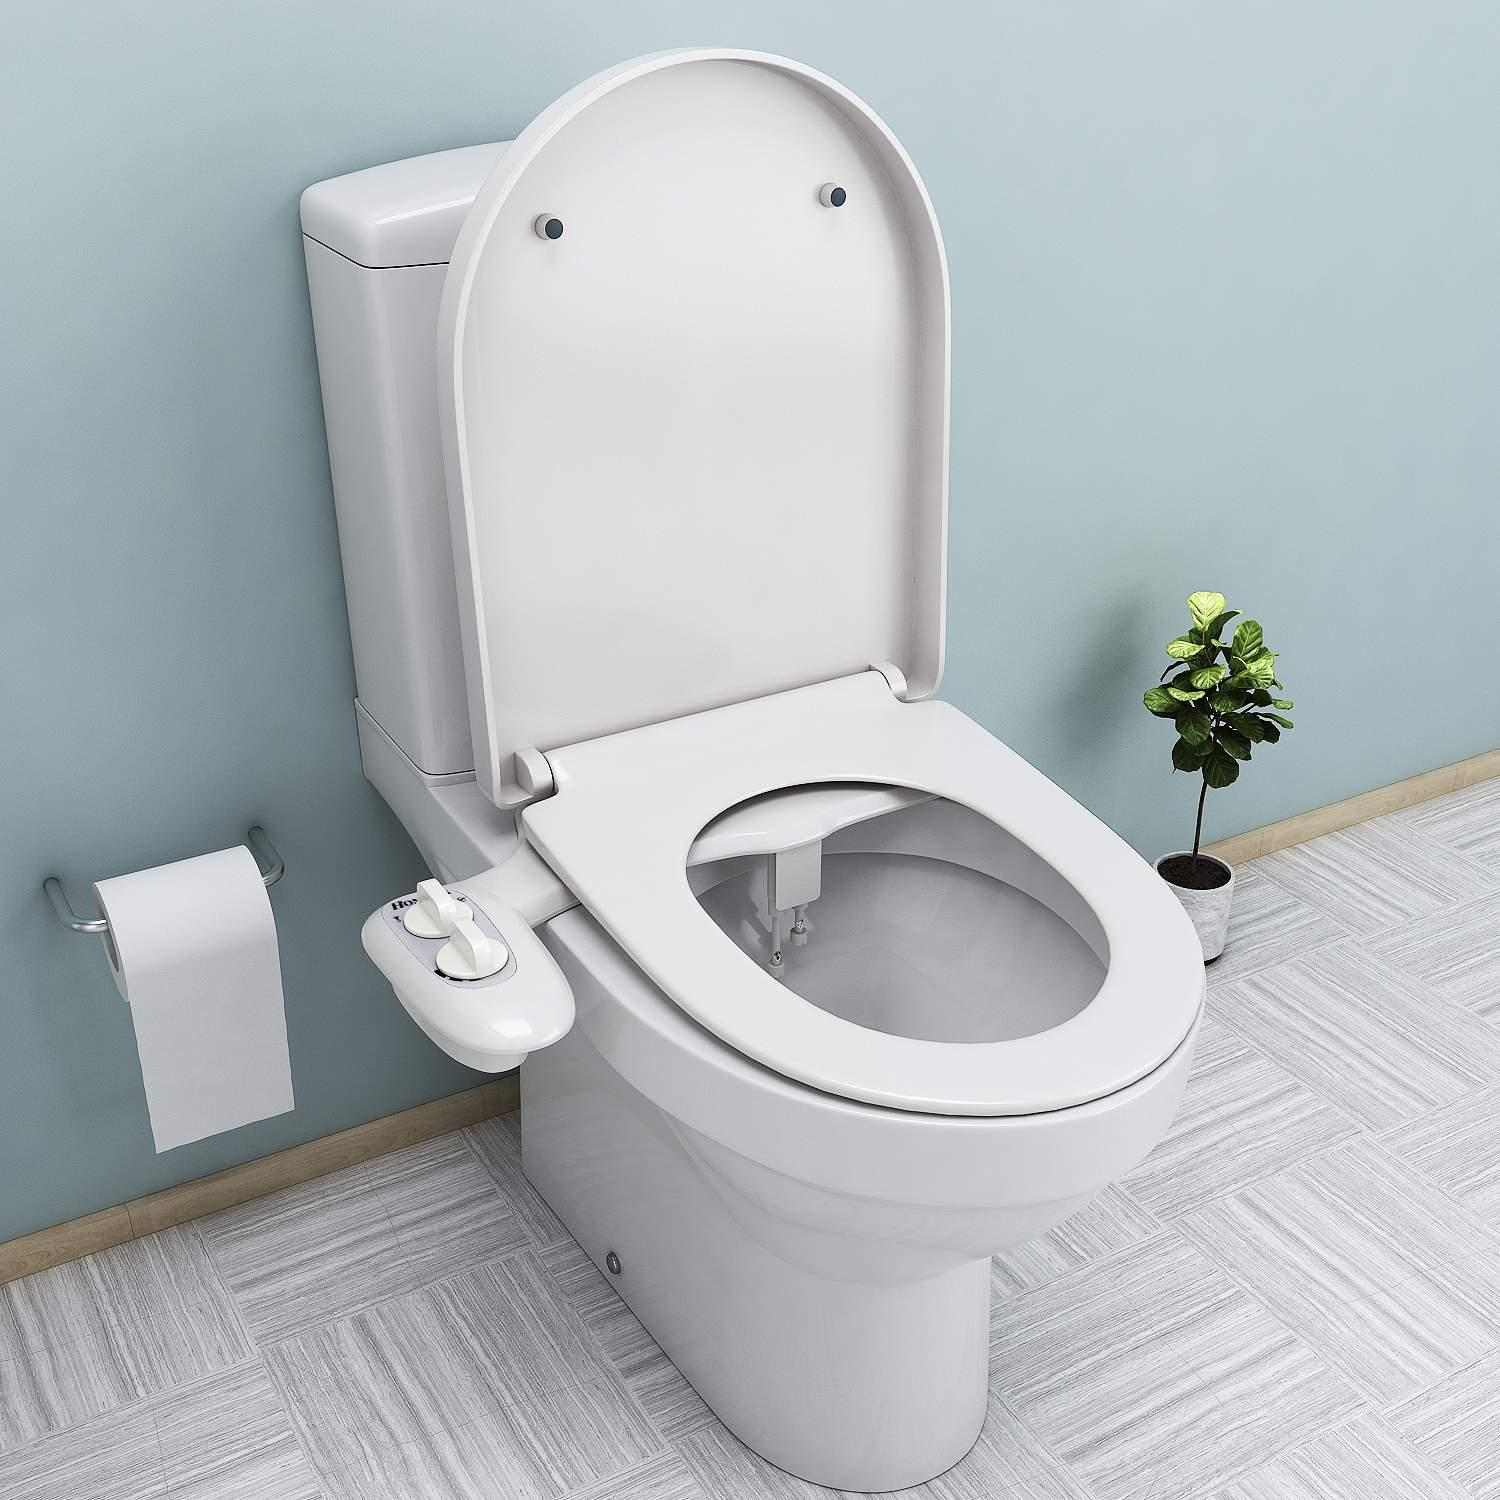 Clearance! Fresh Water Spray Non-Electric Mechanical Bidet Toilet Seat Attachment Bathroom HFON